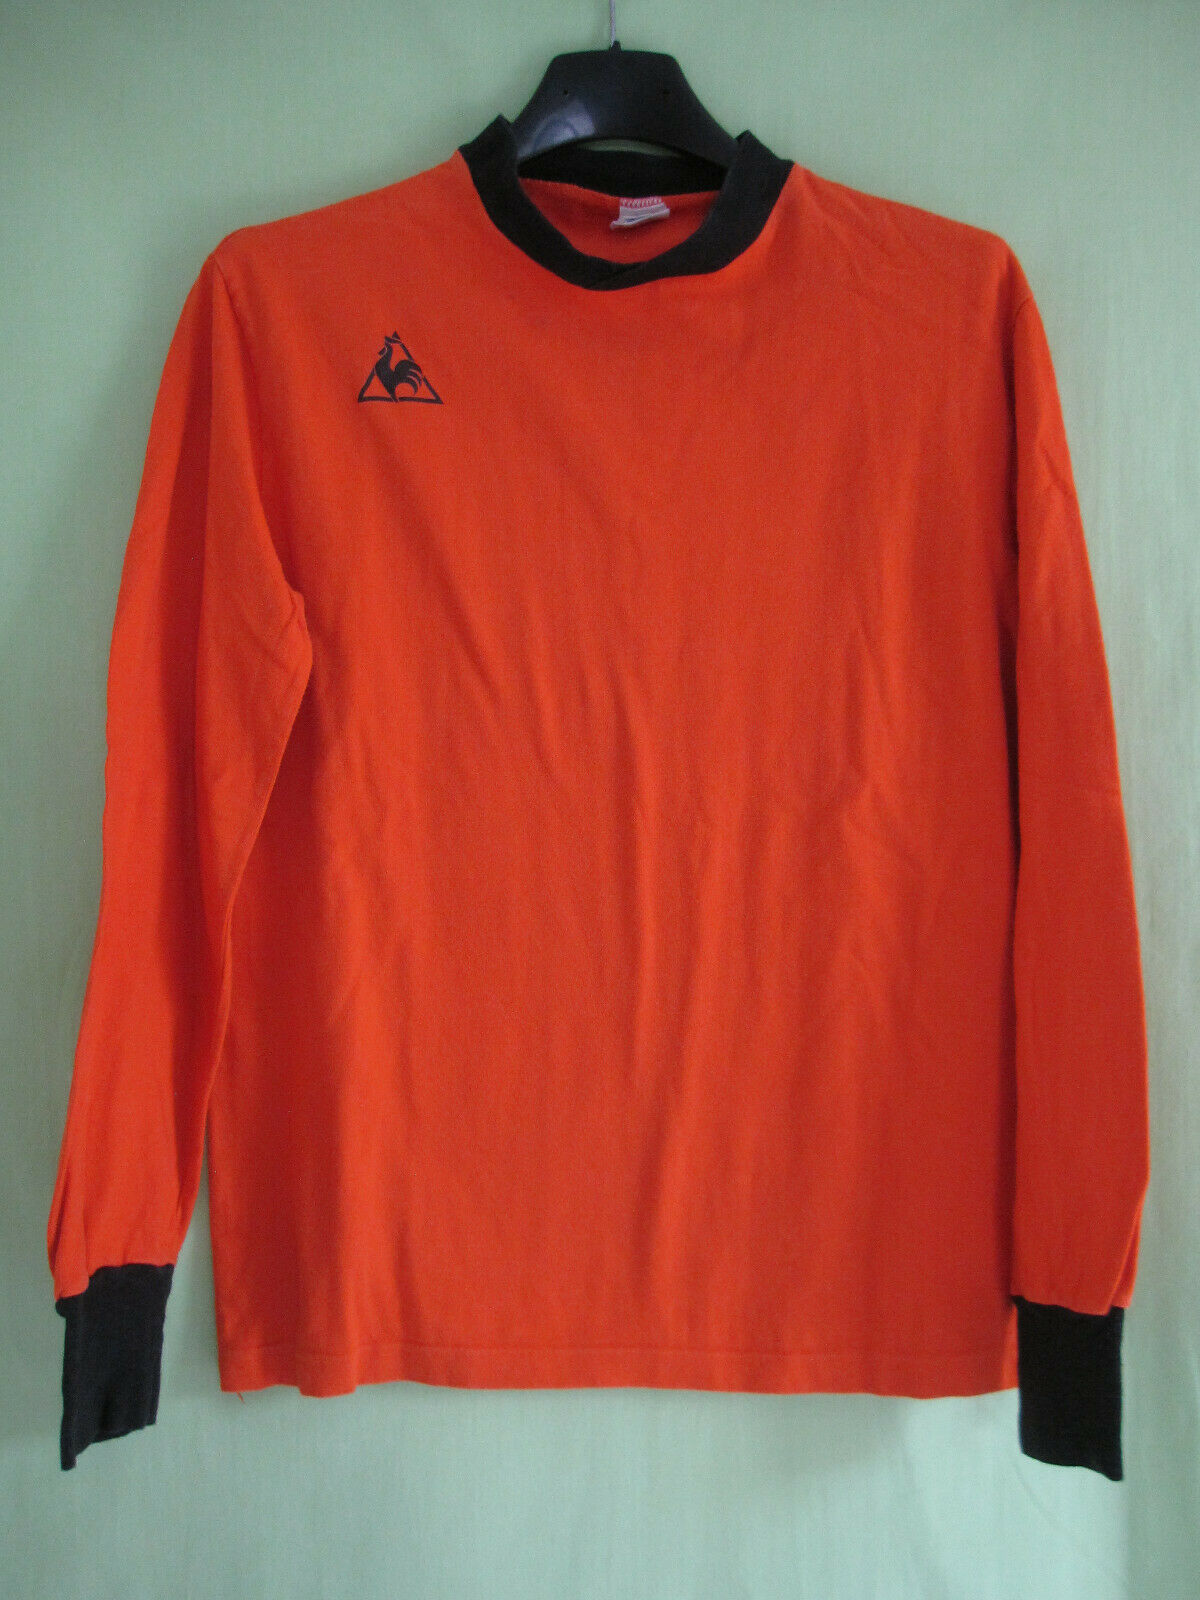 Maillot Le Coq Sportif Vintage orange 70'S Coton Made in France Shirt - S